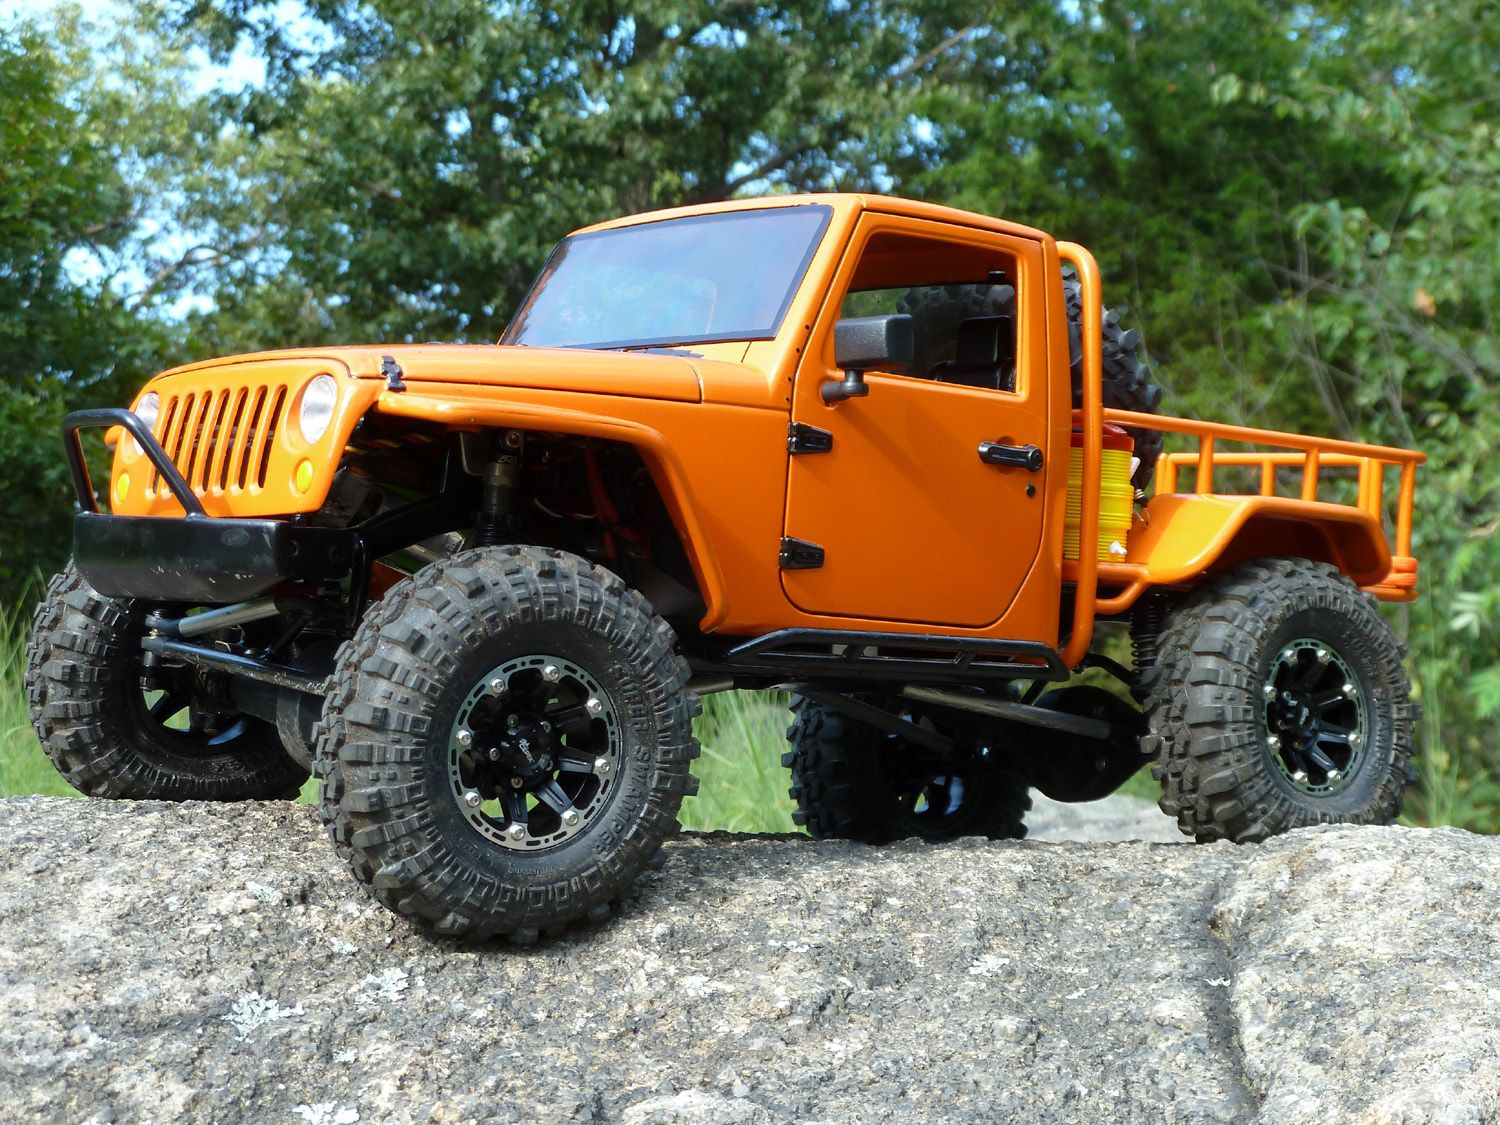 maxxis rc truck with T3306 Bonjour on Axial Releases Maxxis Trepador Tires moreover 10 additionally Losi Desert Buggy Xl Electric Dbxl E further D 3 Sub 31845 Key 31846 in addition Video Viewer.